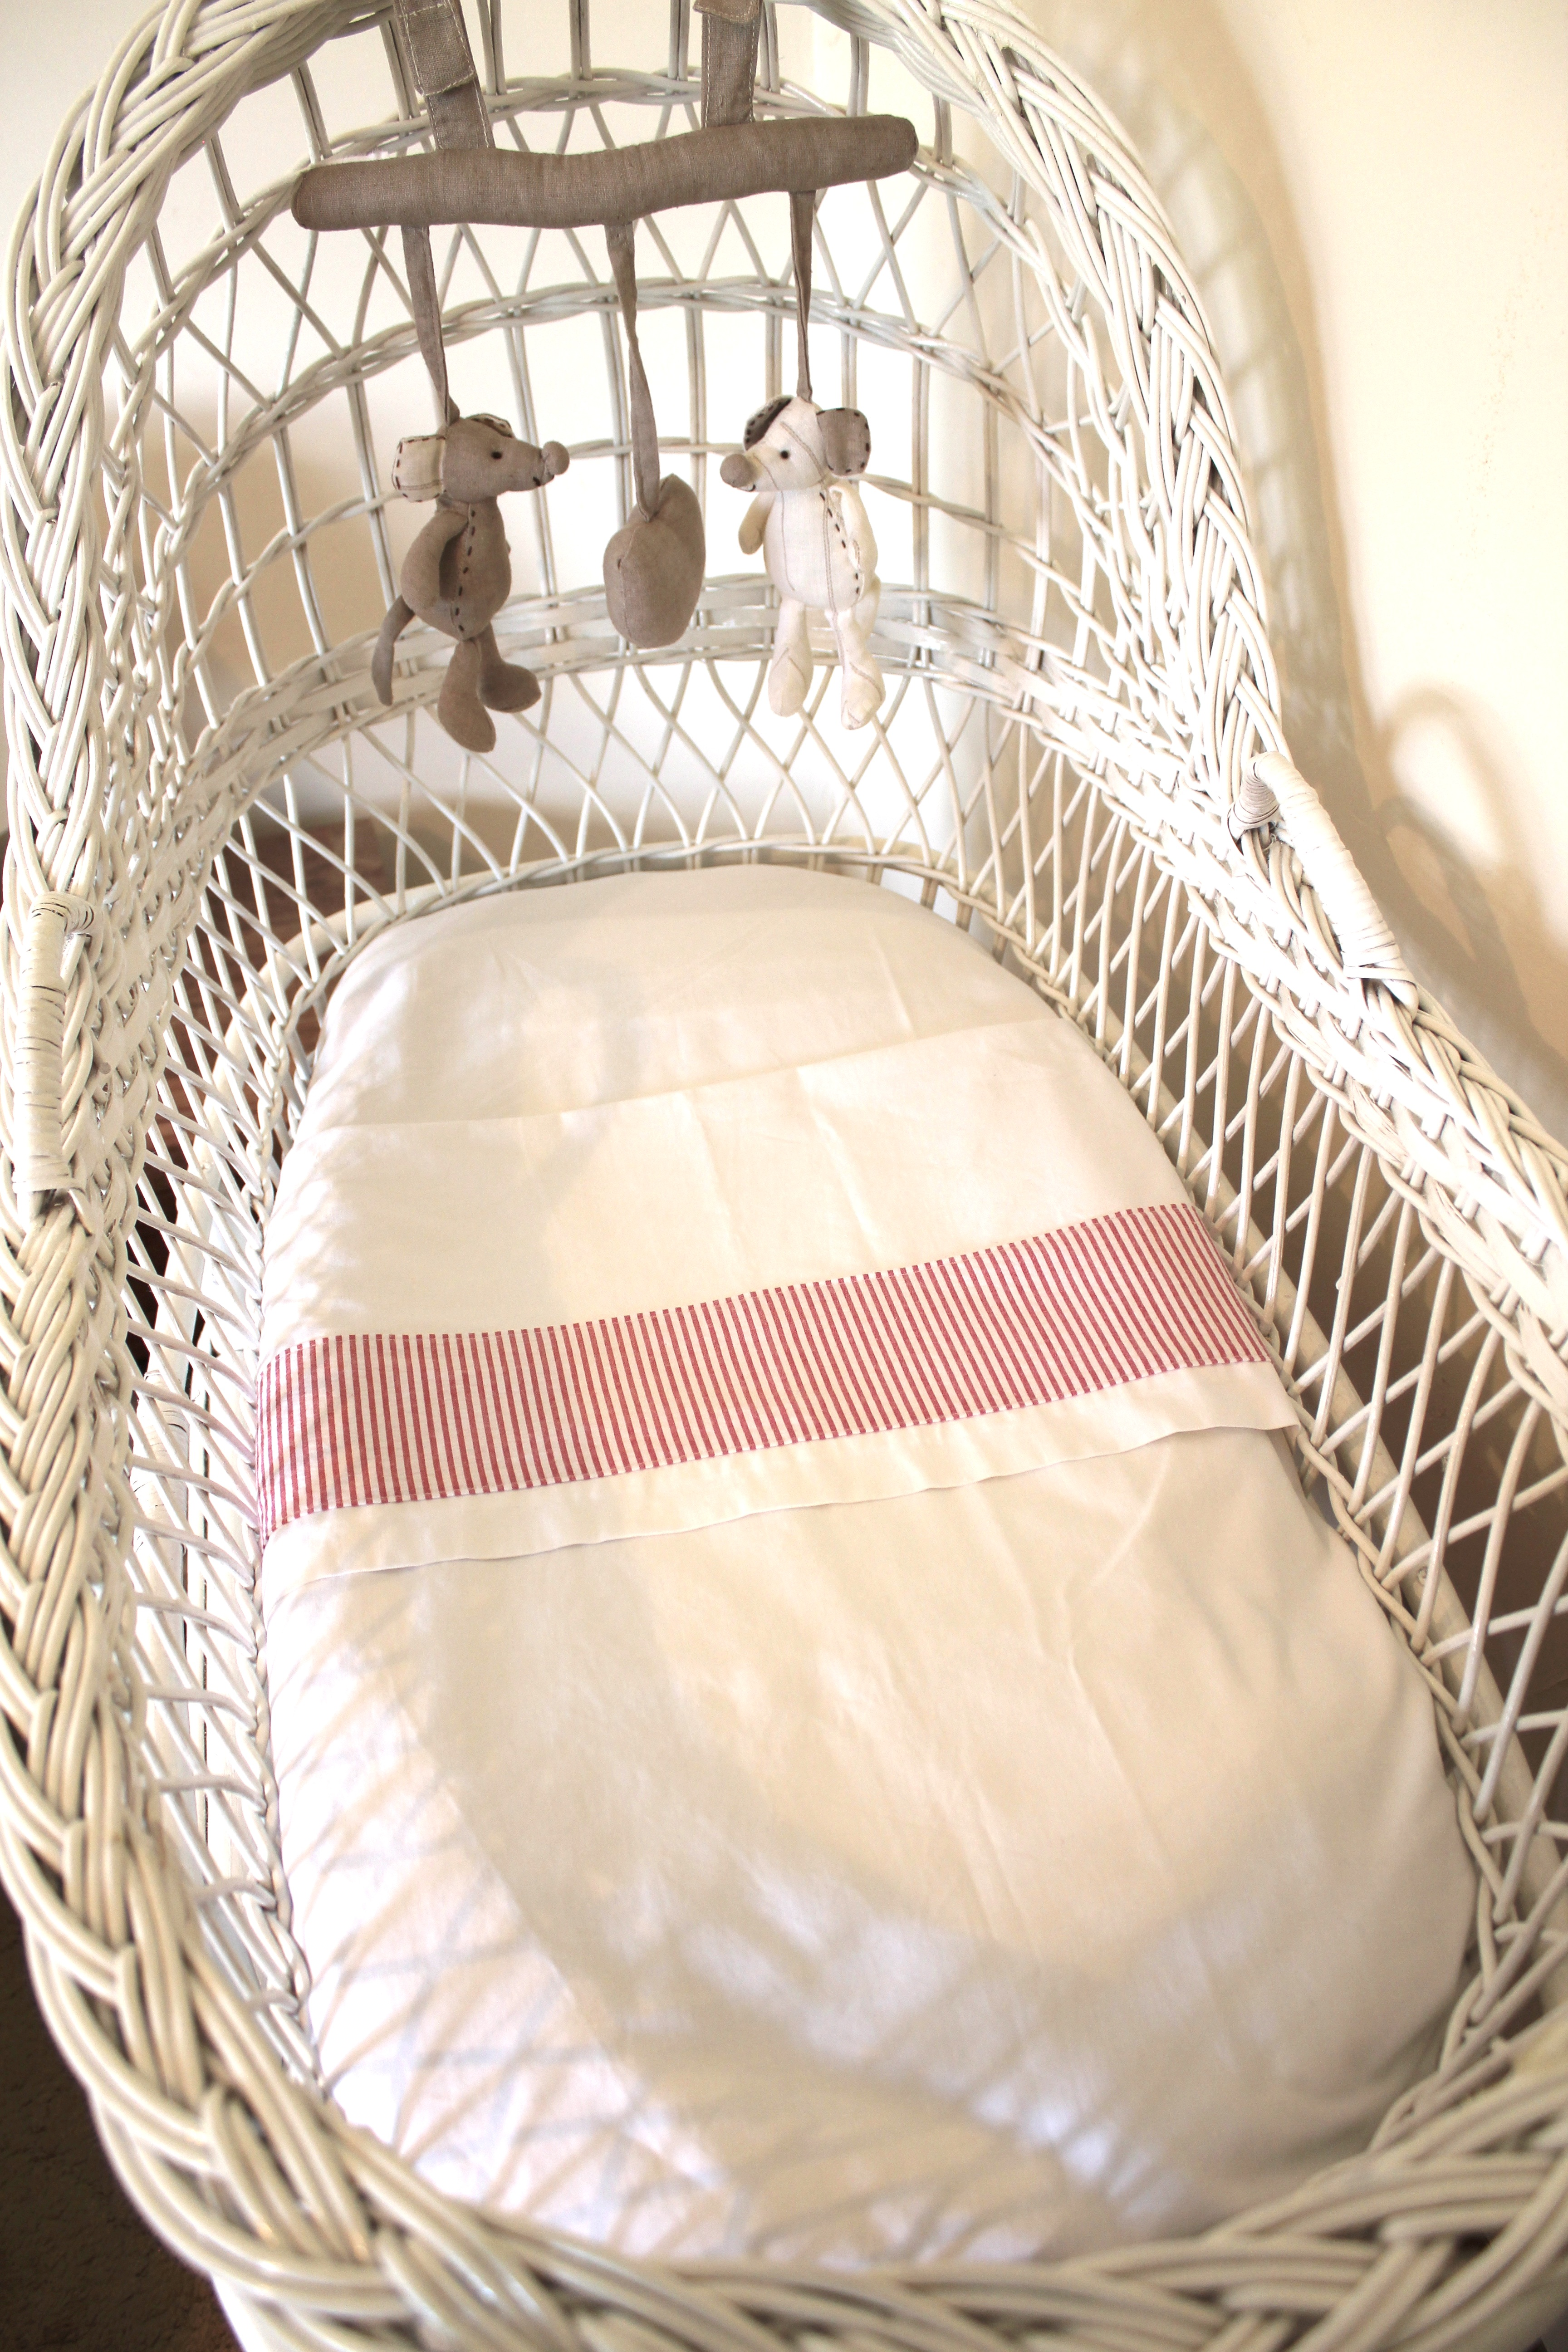 Baby bed sheet pattern - I